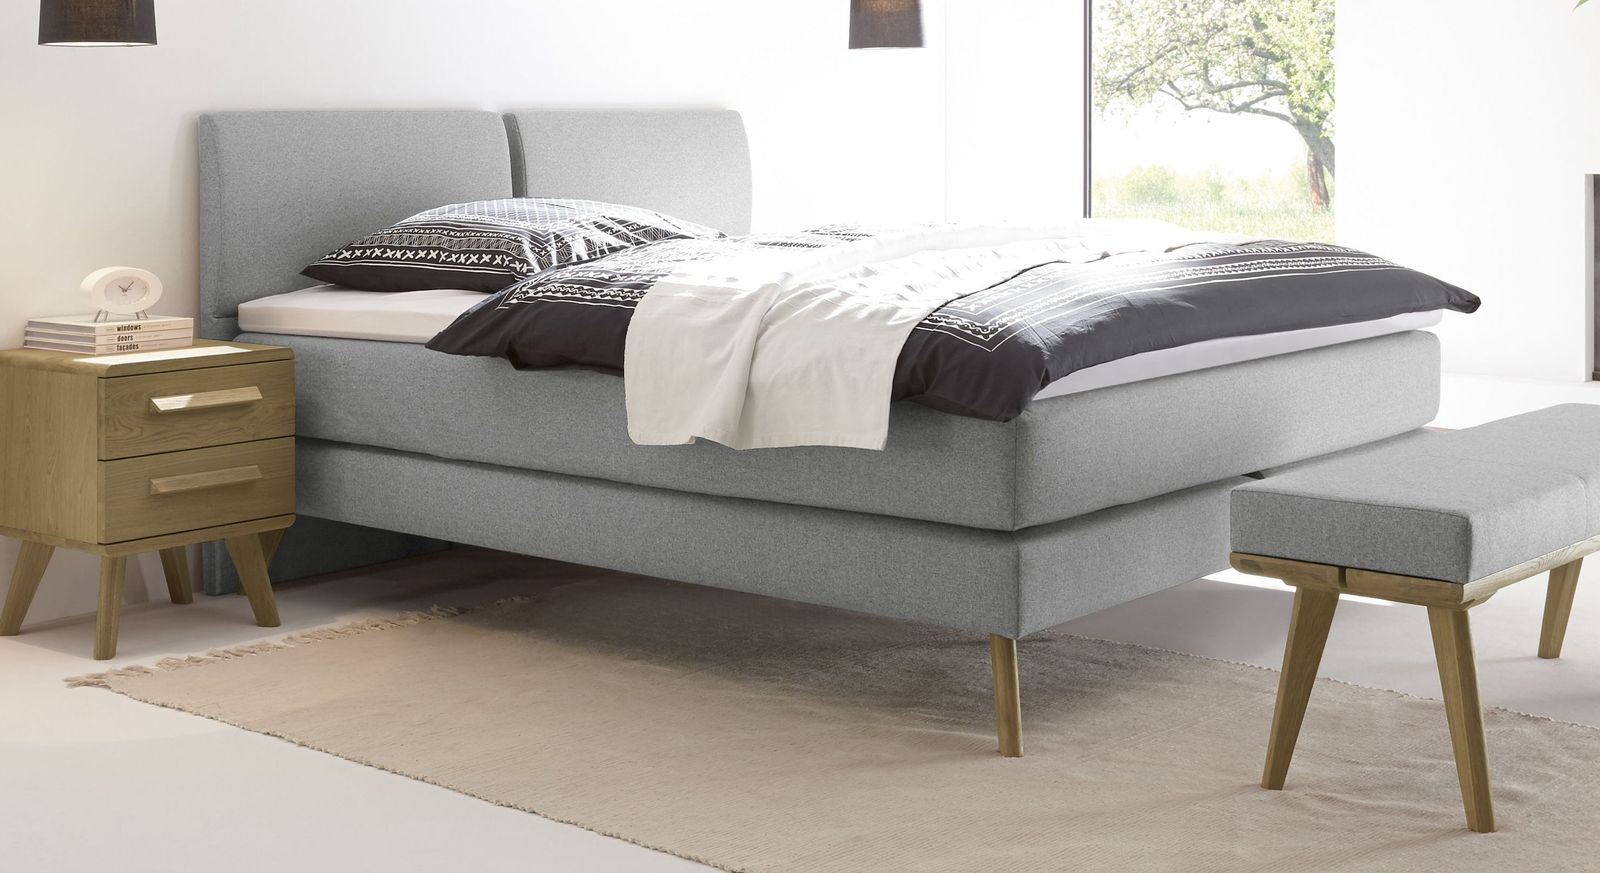 Viane Boxspringbett in grau